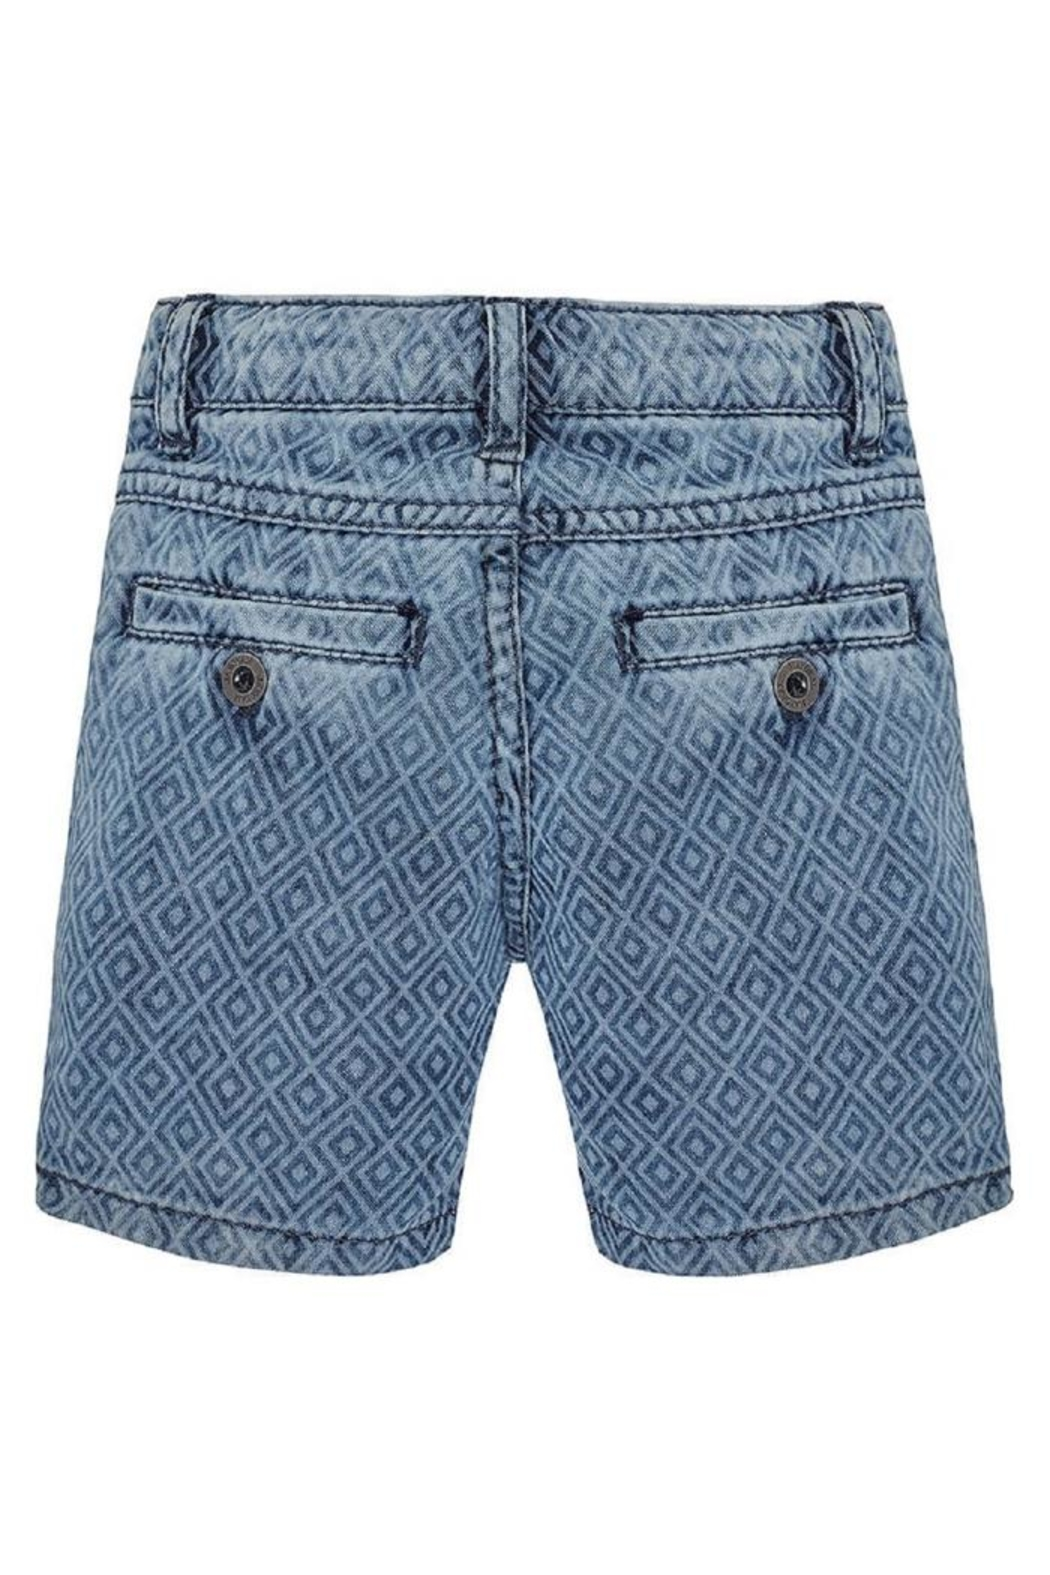 Mayoral Printed Denim Short - Front Full Image